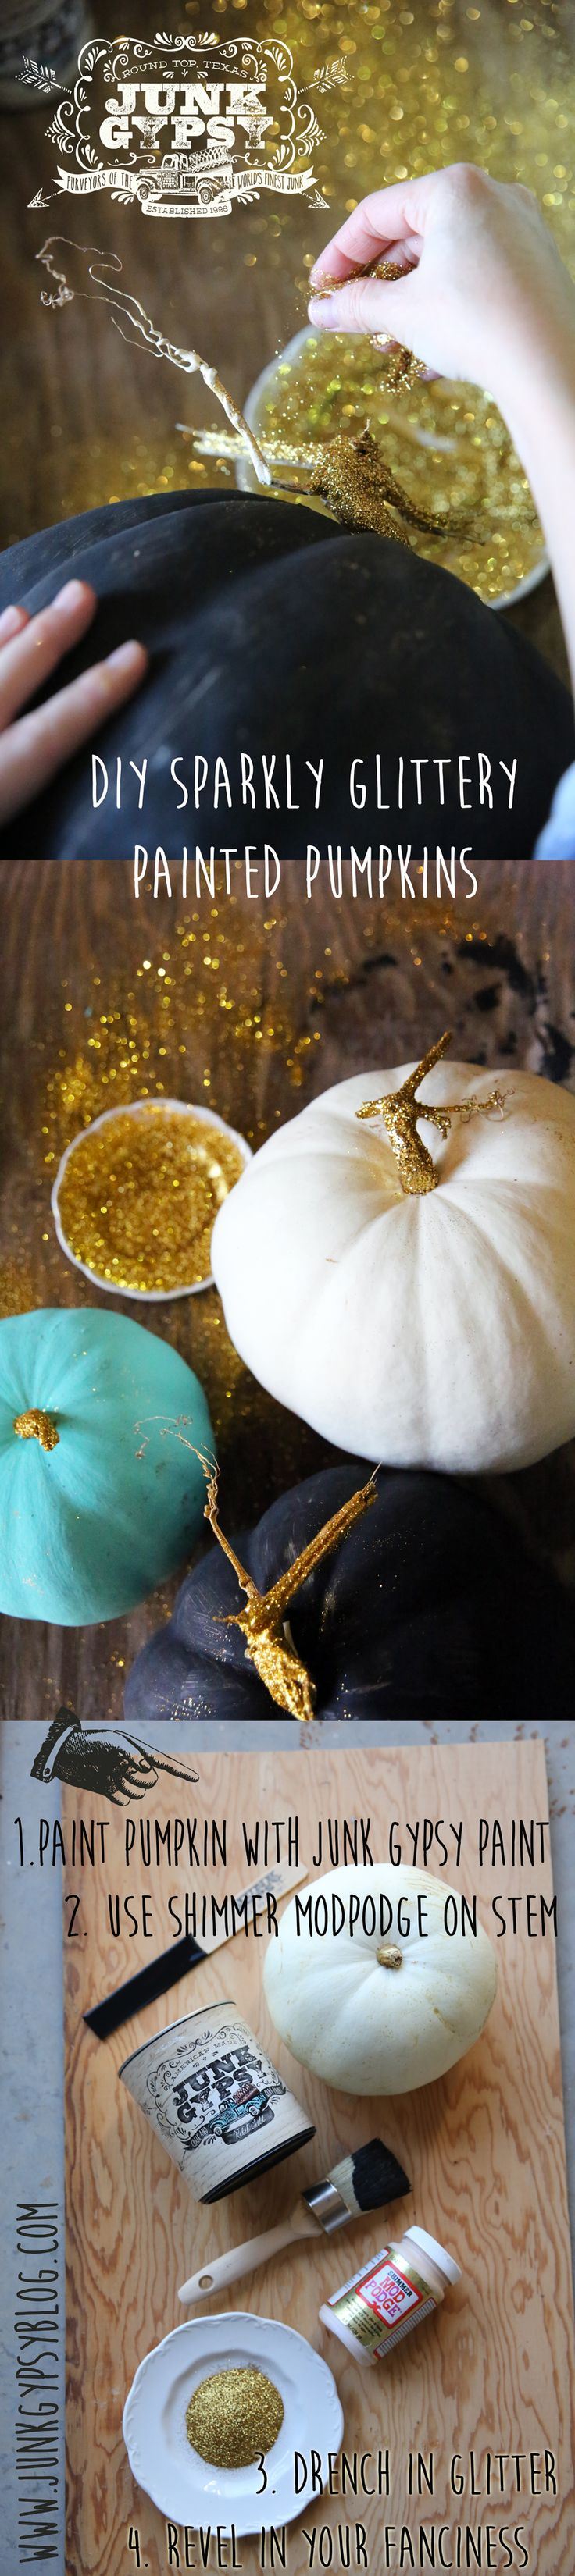 diy sparkly glittery painted pumpkins {junk gypsy co.}